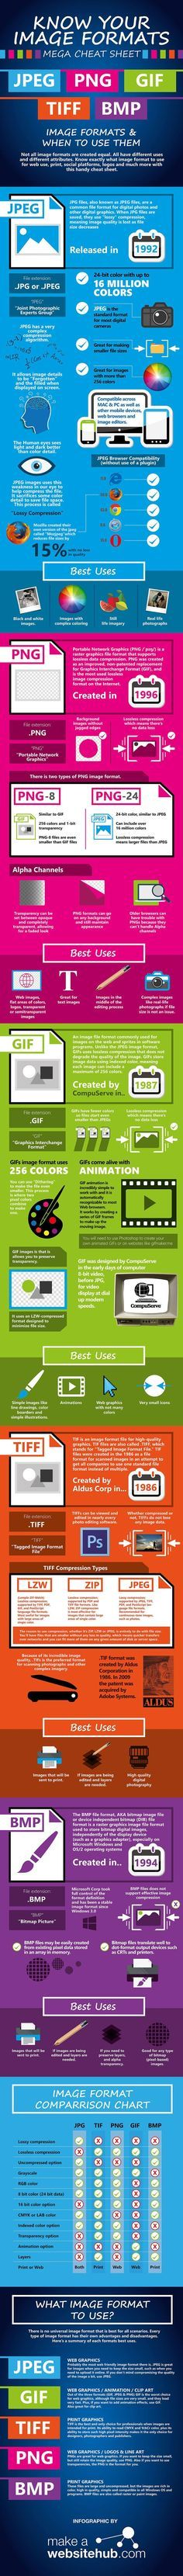 Photography tips | Learn file formats - jpg png gif bmp tiff mega cheat sheet The Ultimate Image Format Cheat Sheet (Infographic)